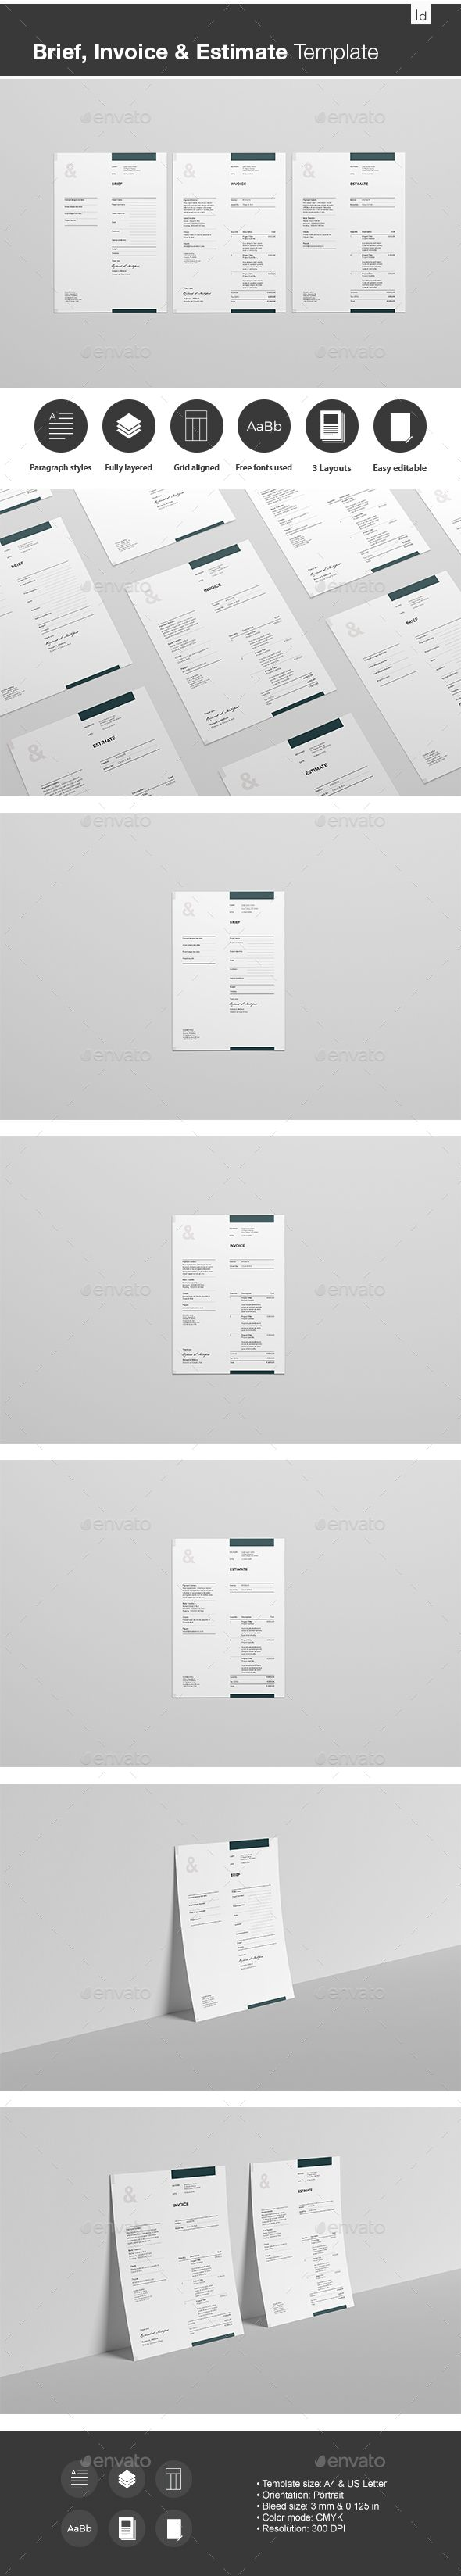 Brief Estimate And Invoice Template  Template Proposal